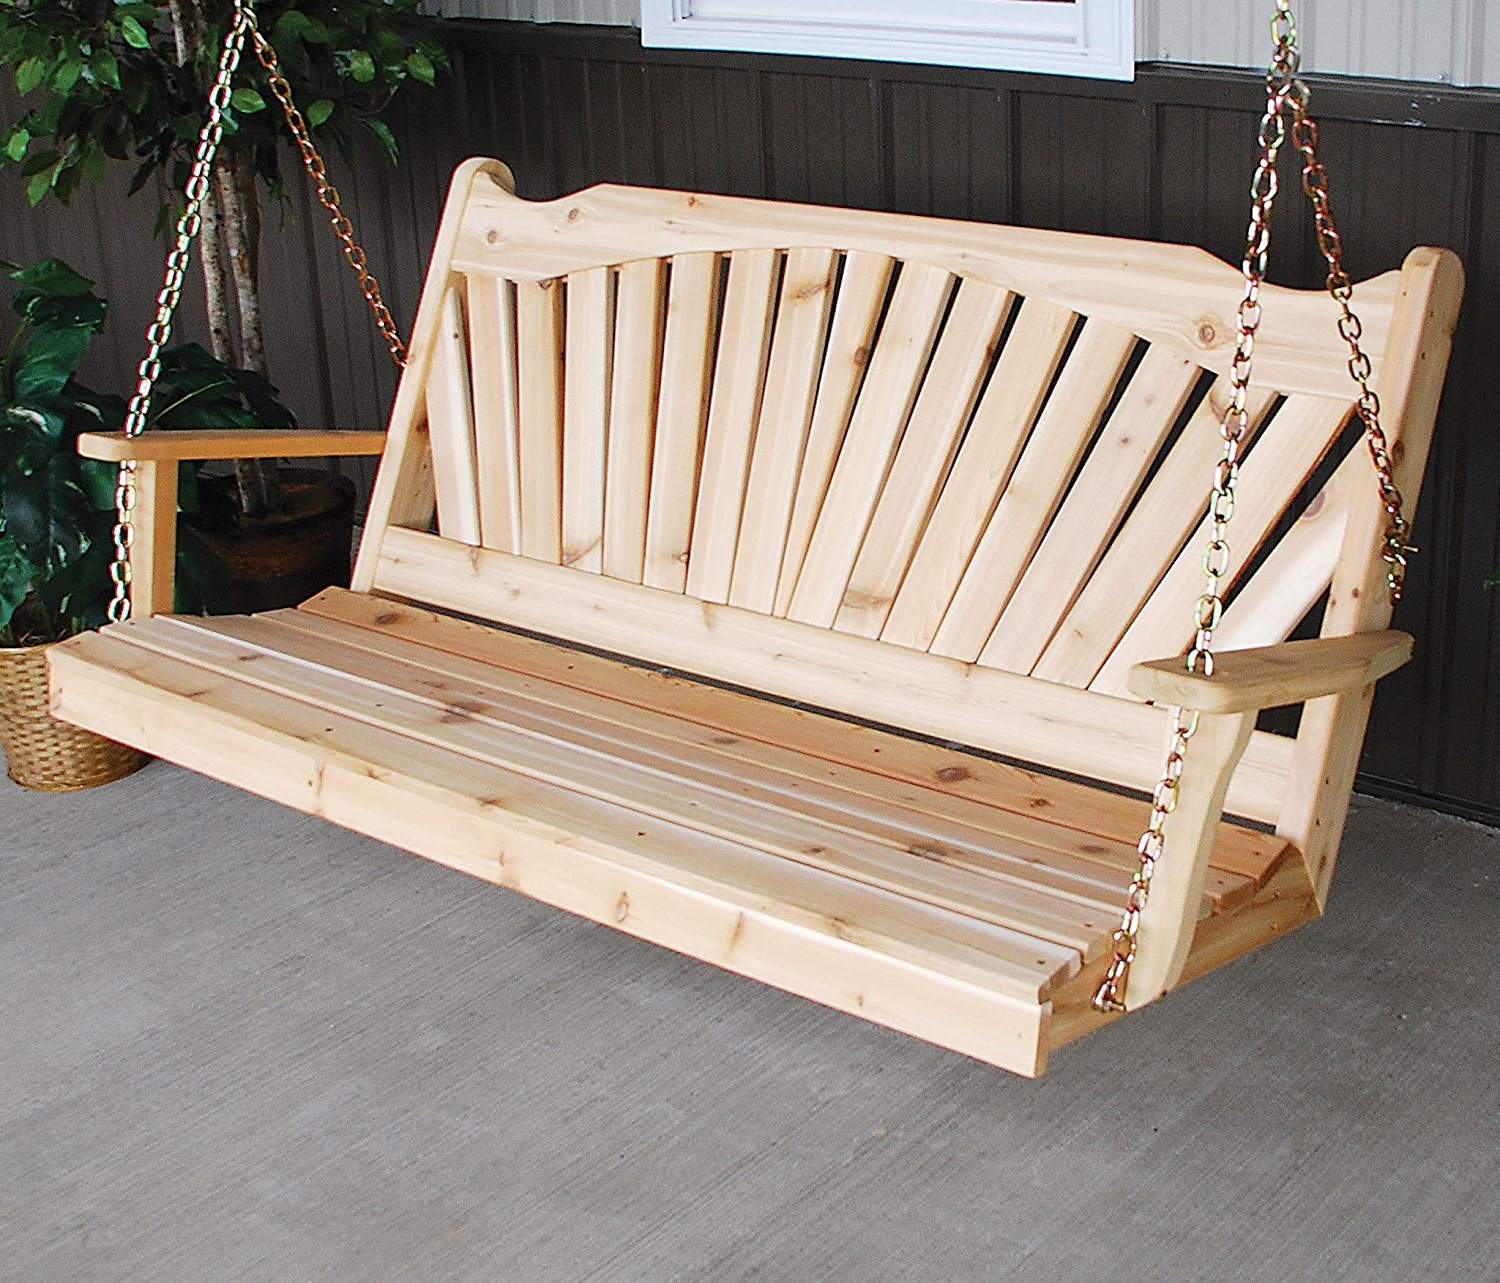 Well Liked Aspen Tree Interiors Cedar Porch Swing, Amish Outdoor Hanging Porch Swings, Patio Wooden 2 Person Seat Swinging Bench, Weather Resistant Western Red Regarding 2 Person Natural Cedar Wood Outdoor Swings (View 7 of 30)